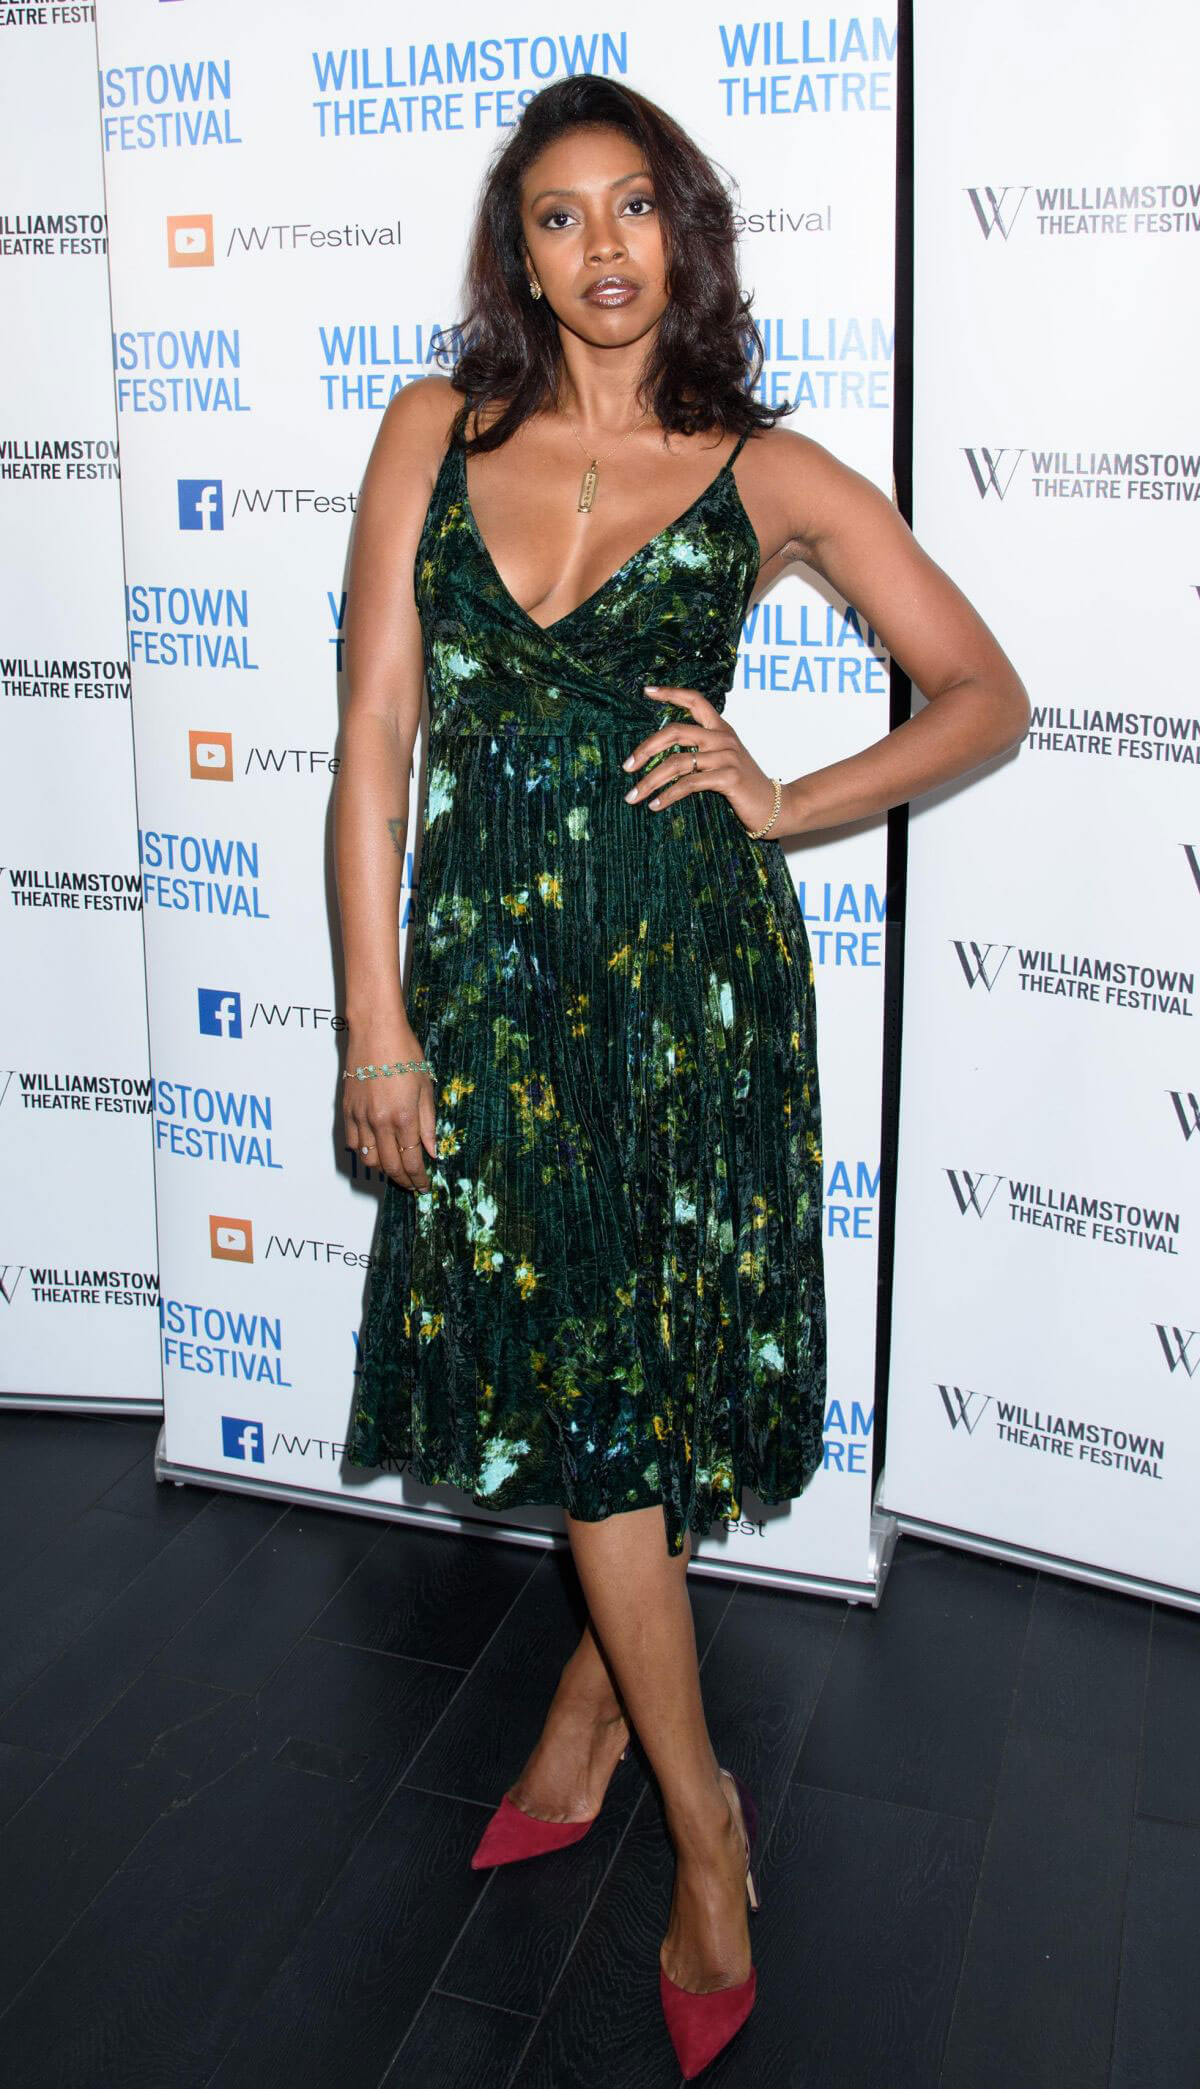 Condola Rashad Stills at Williamstown Theatre Festival Gala 2018 at Tao Downtown 2018/02/06